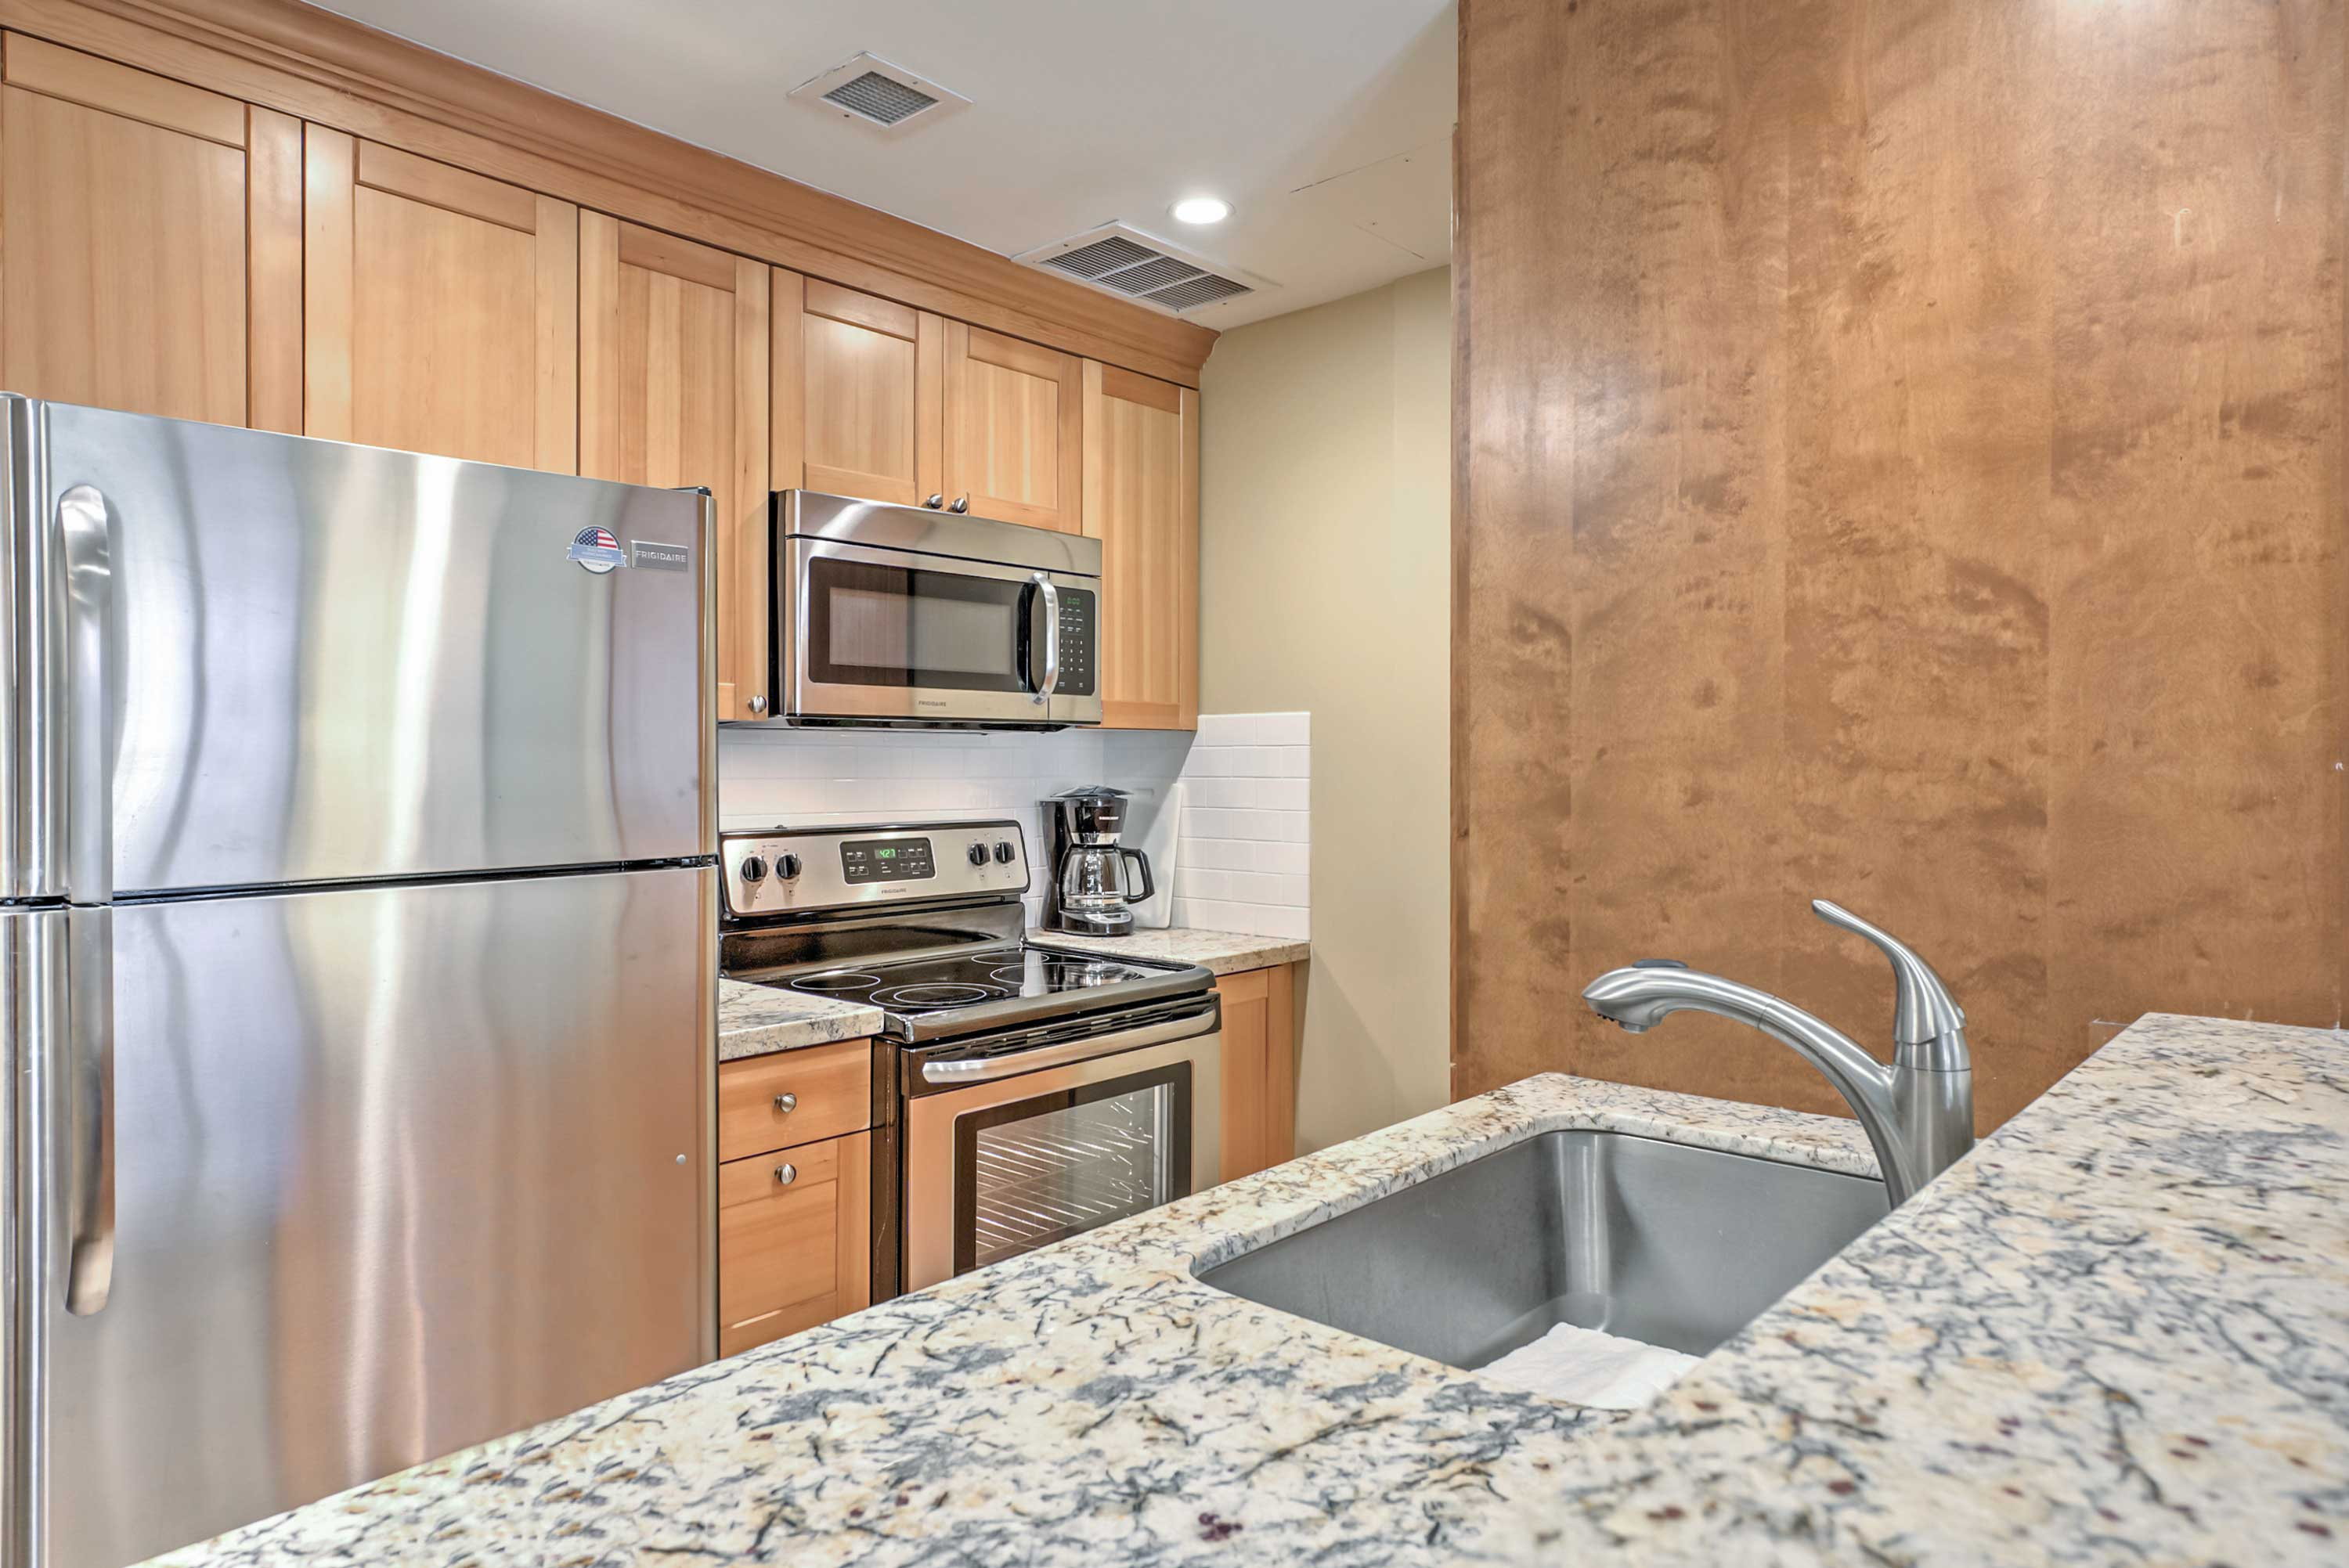 The spacious and fully equipped kitchen makes staying in and cooking easy!